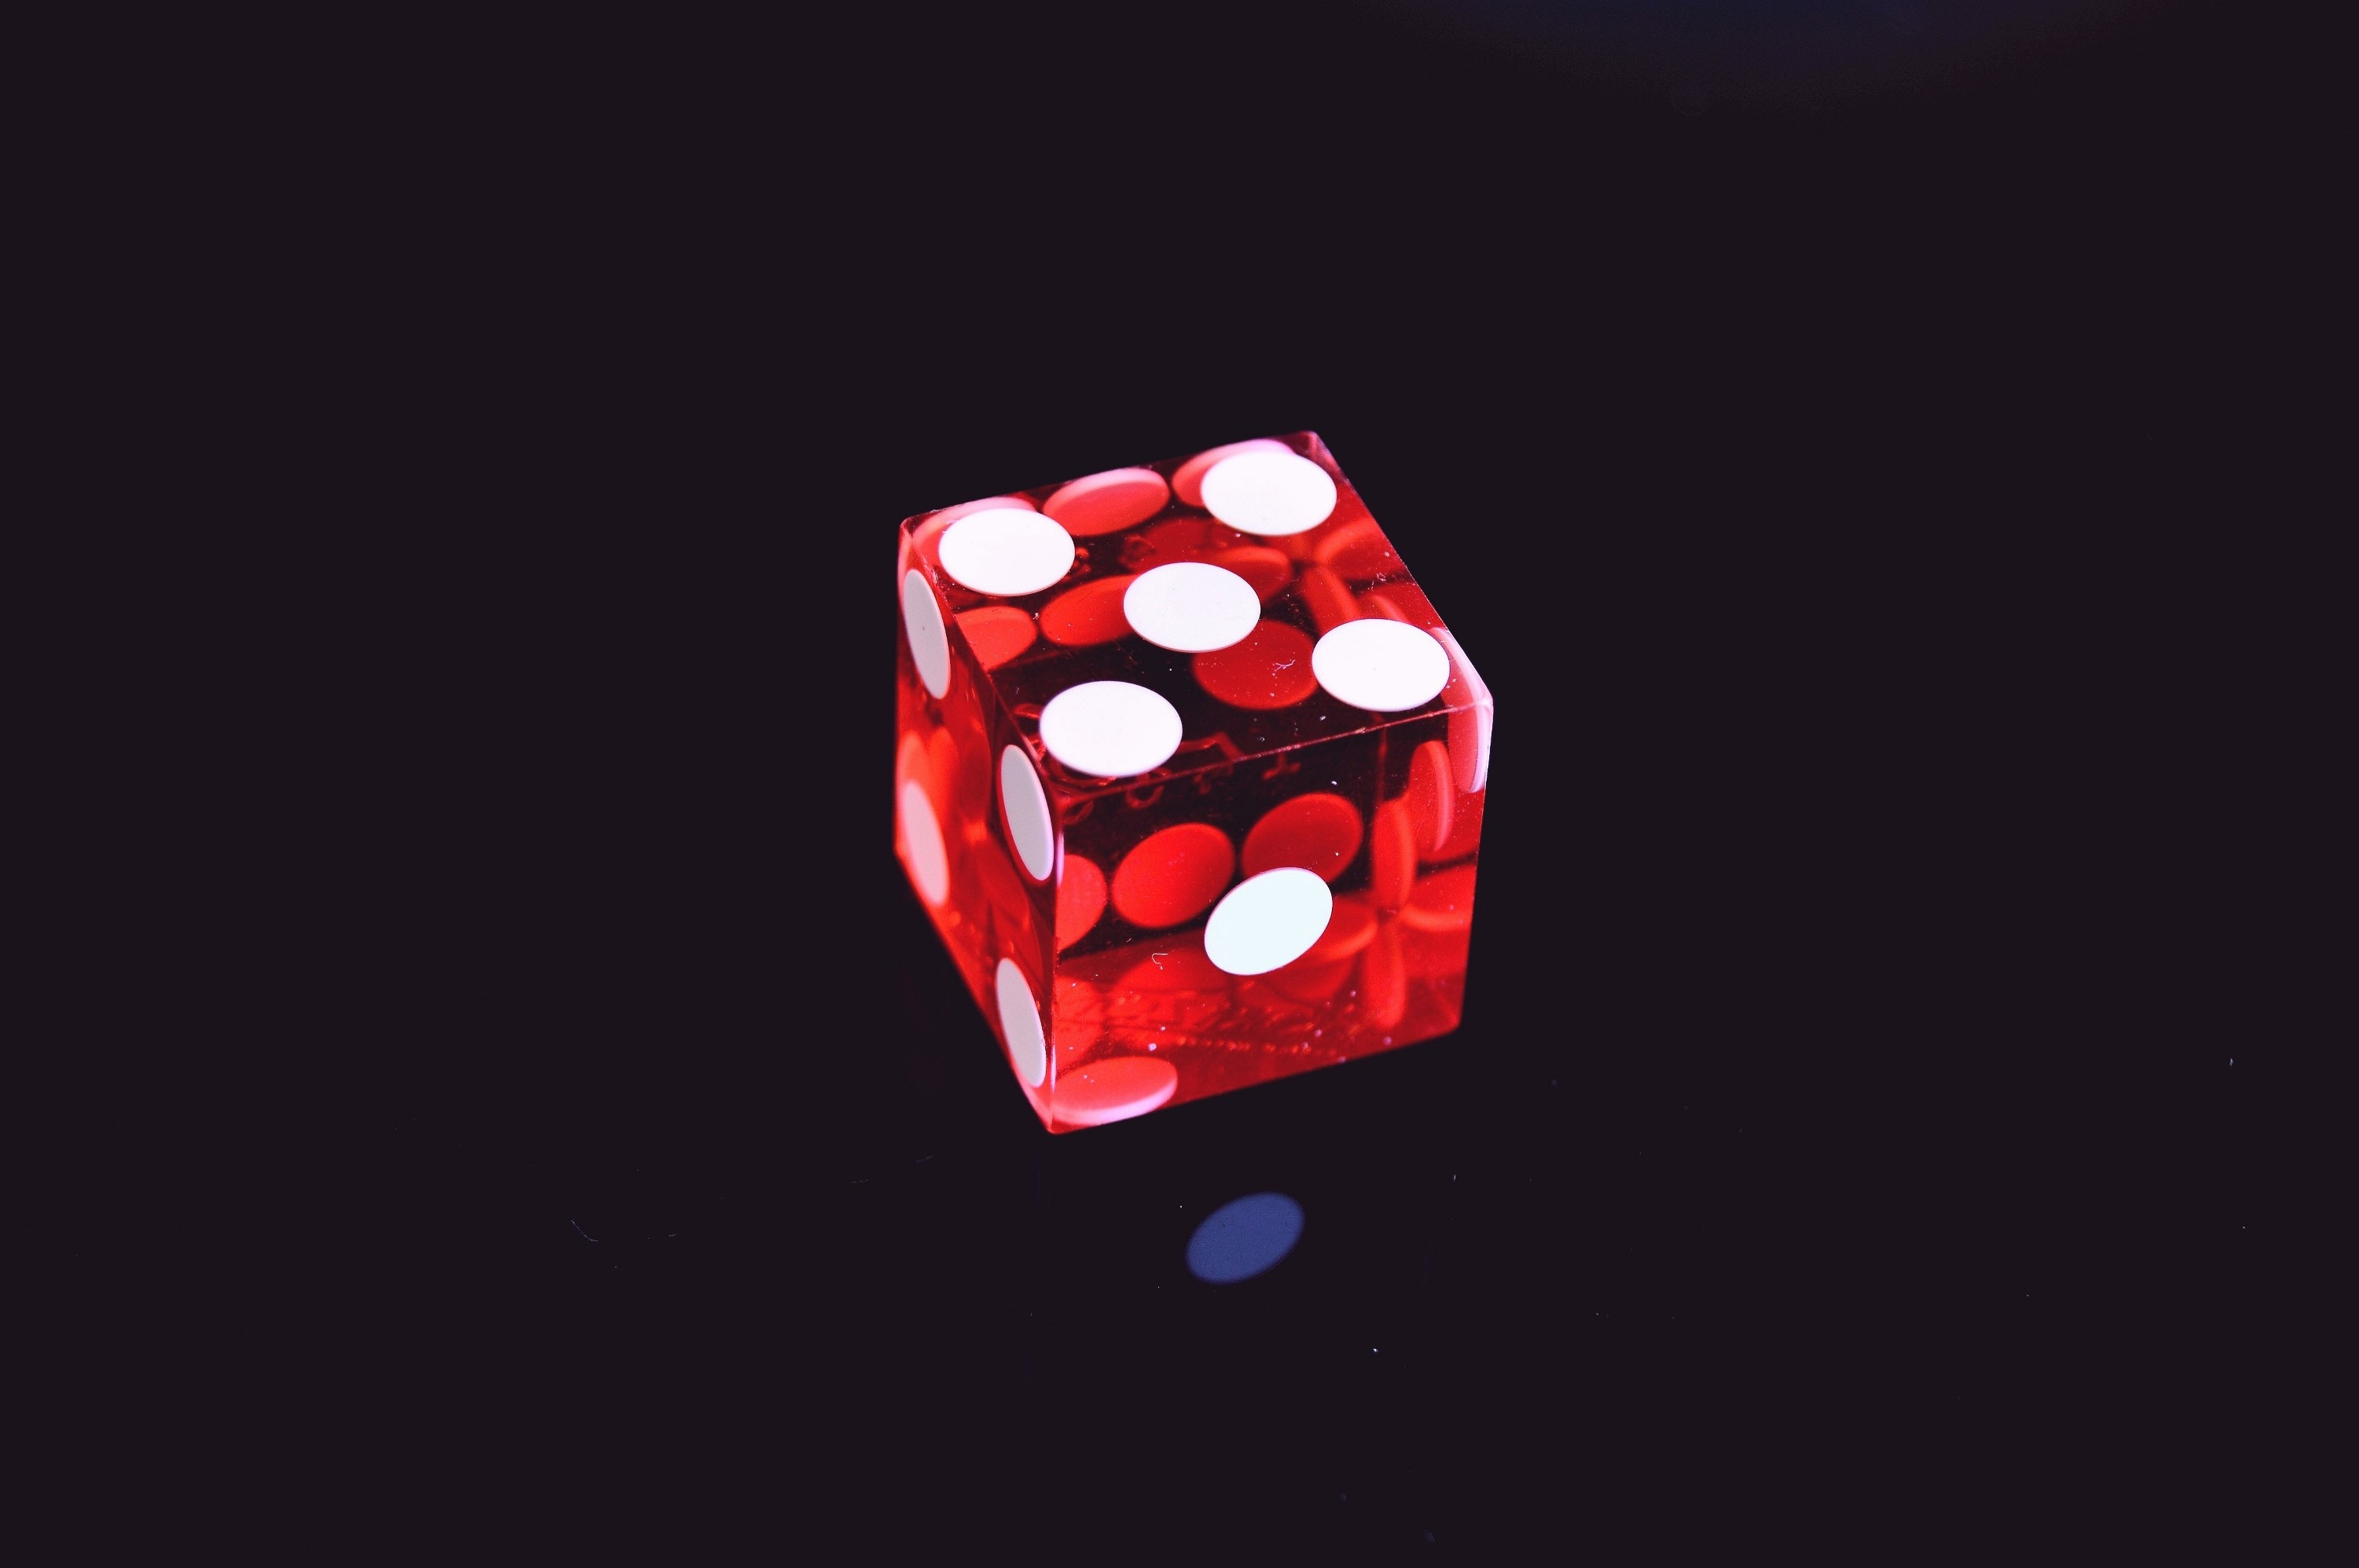 Red Translucent Die on Top of Black Surface, Black background, Close-up, Colors, Cube, HQ Photo